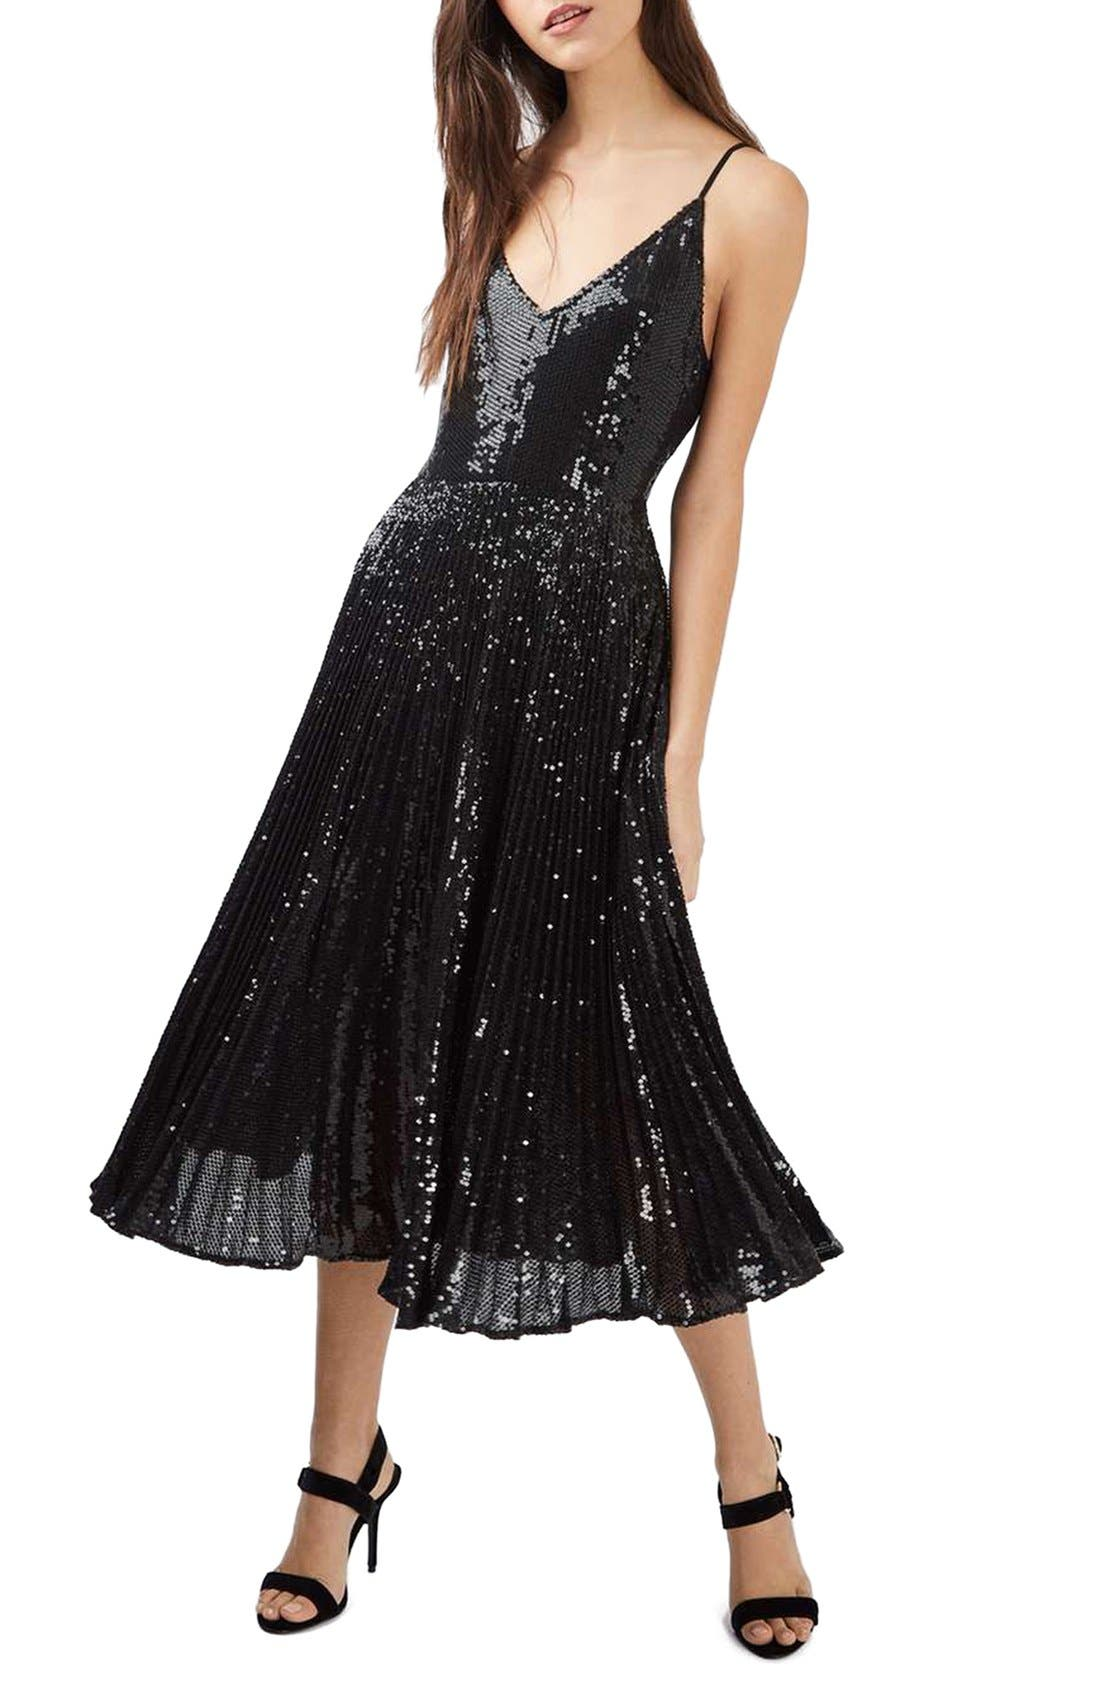 Alternate Image 1 Selected - Topshop Sequin Pleated Dress